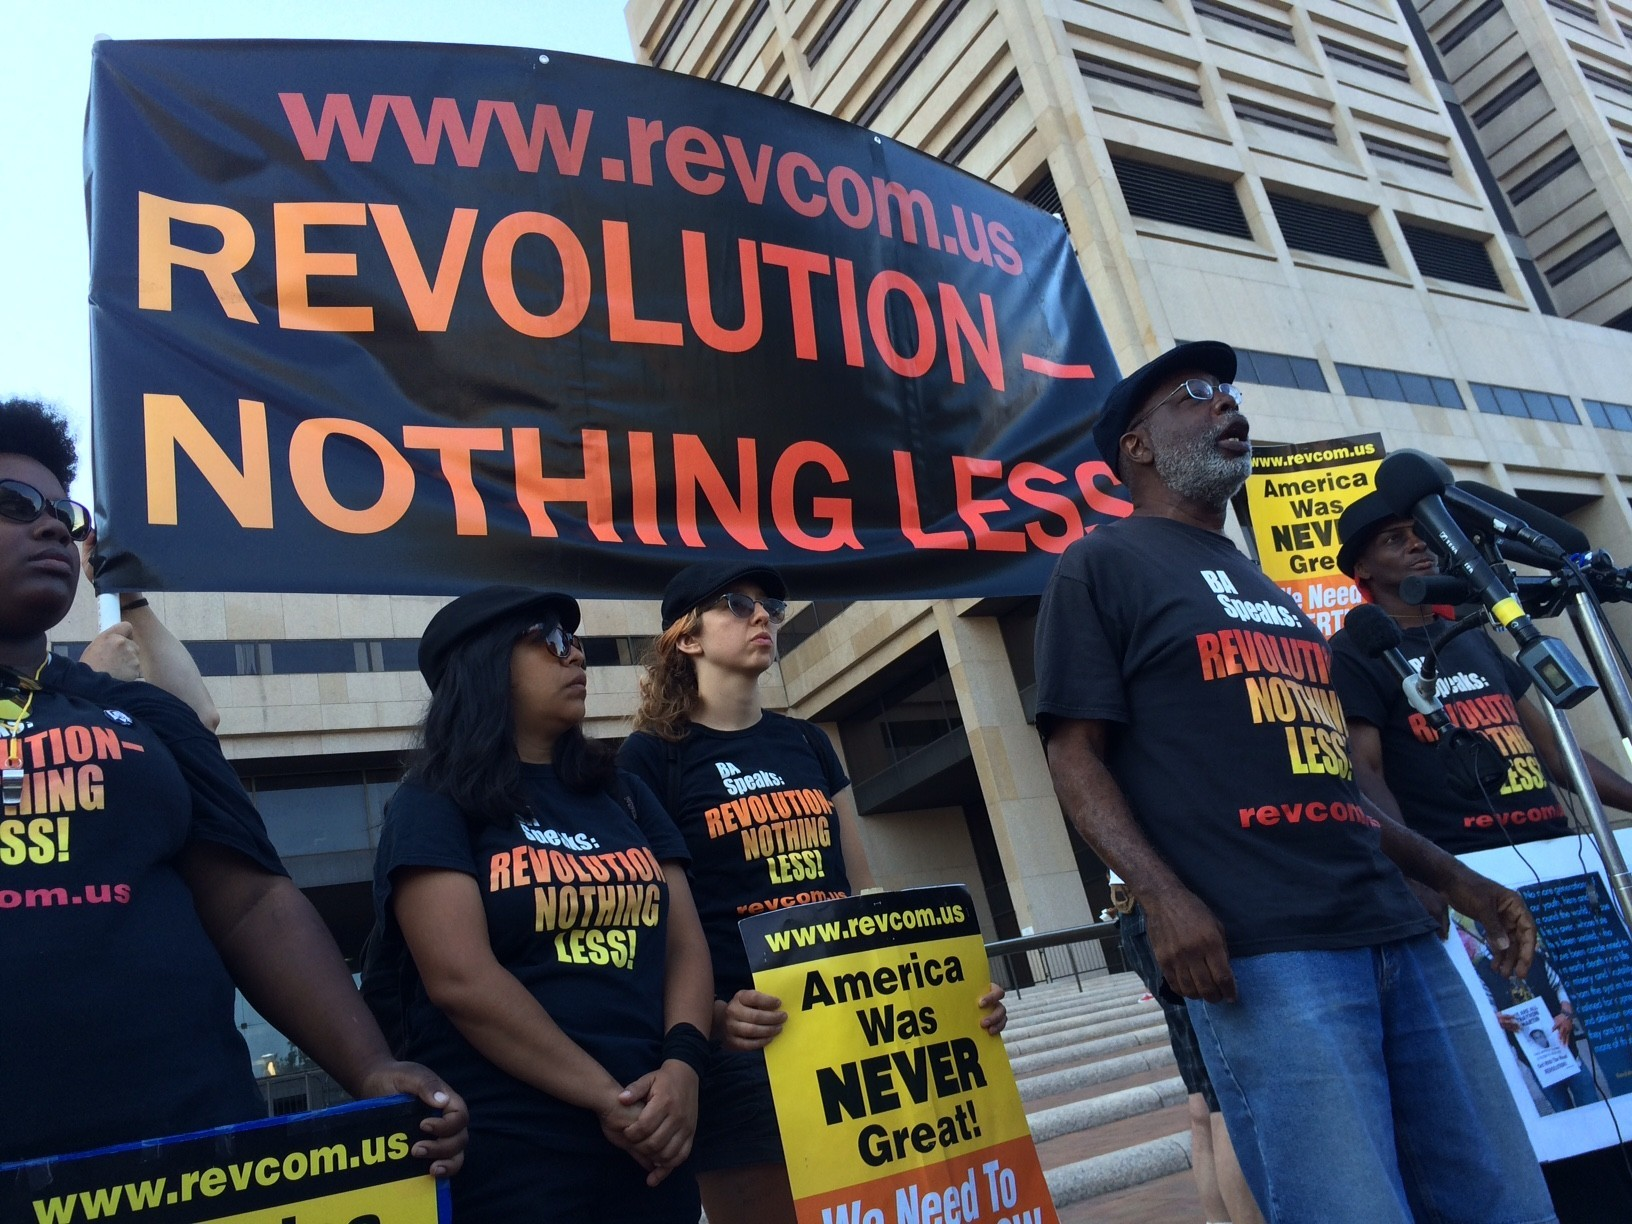 Carl Dix, a founding member of the Revolutionary Communist Party, says supporters will challenge the arrests of 17 people in Wednesday's flag-burning protest.